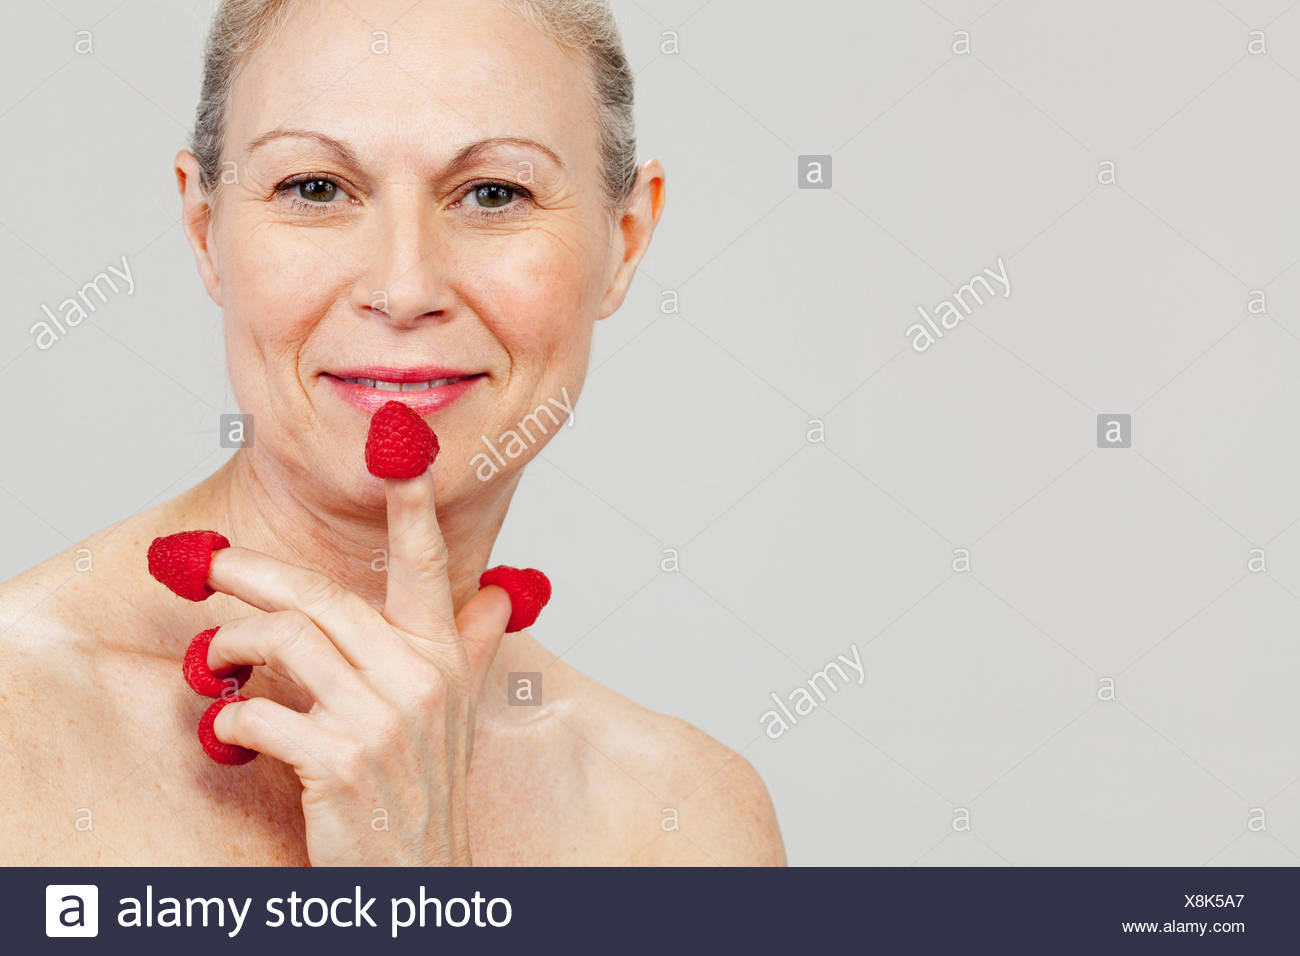 Matchless mature woman eats young woman